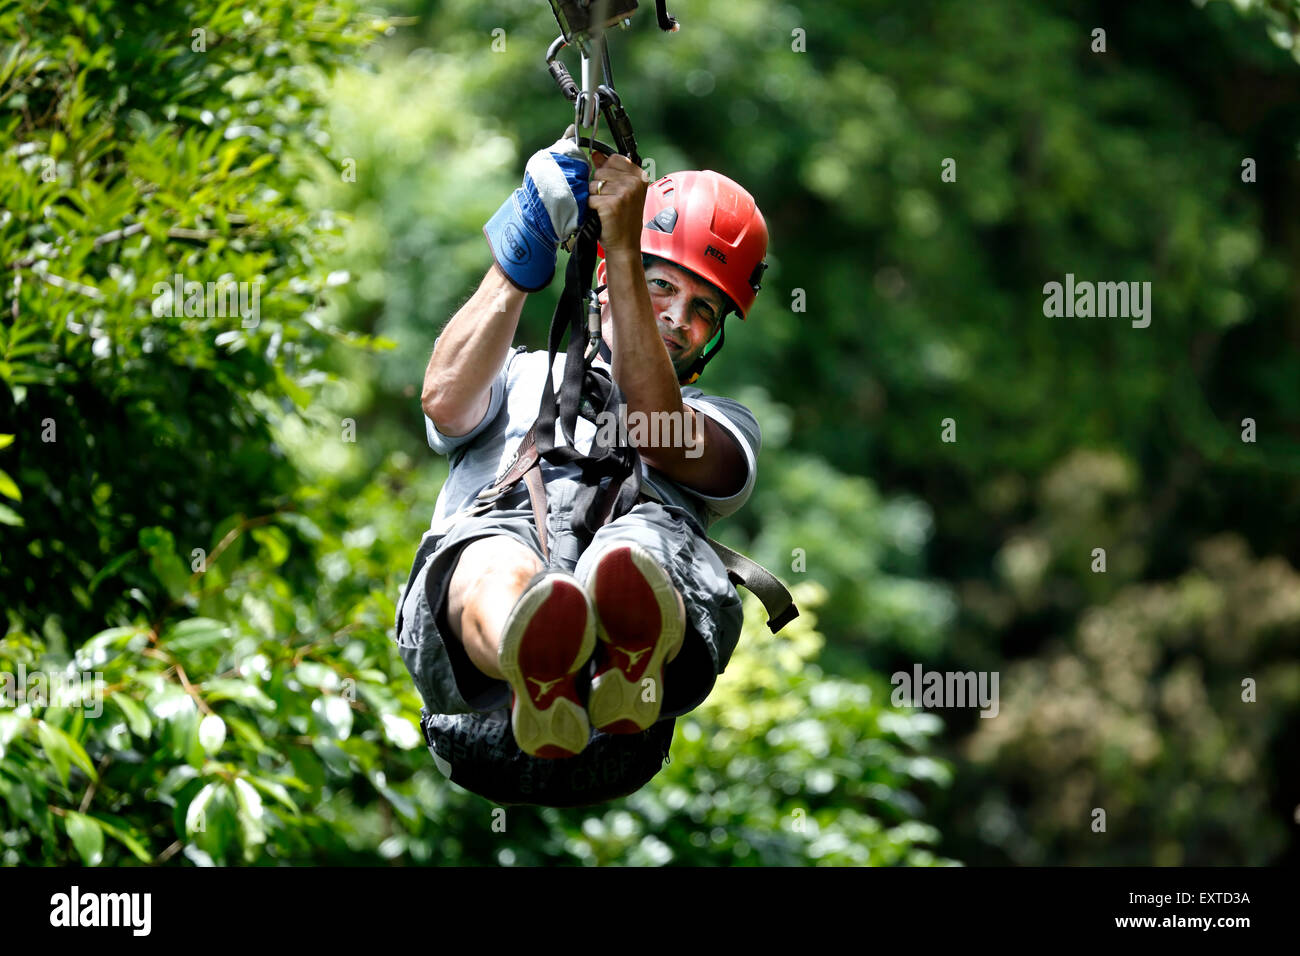 Man on zip line, Ecoquest Adventures & Tours, Hacienda Campo Rico, Carolina, Puerto Rico - Stock Image